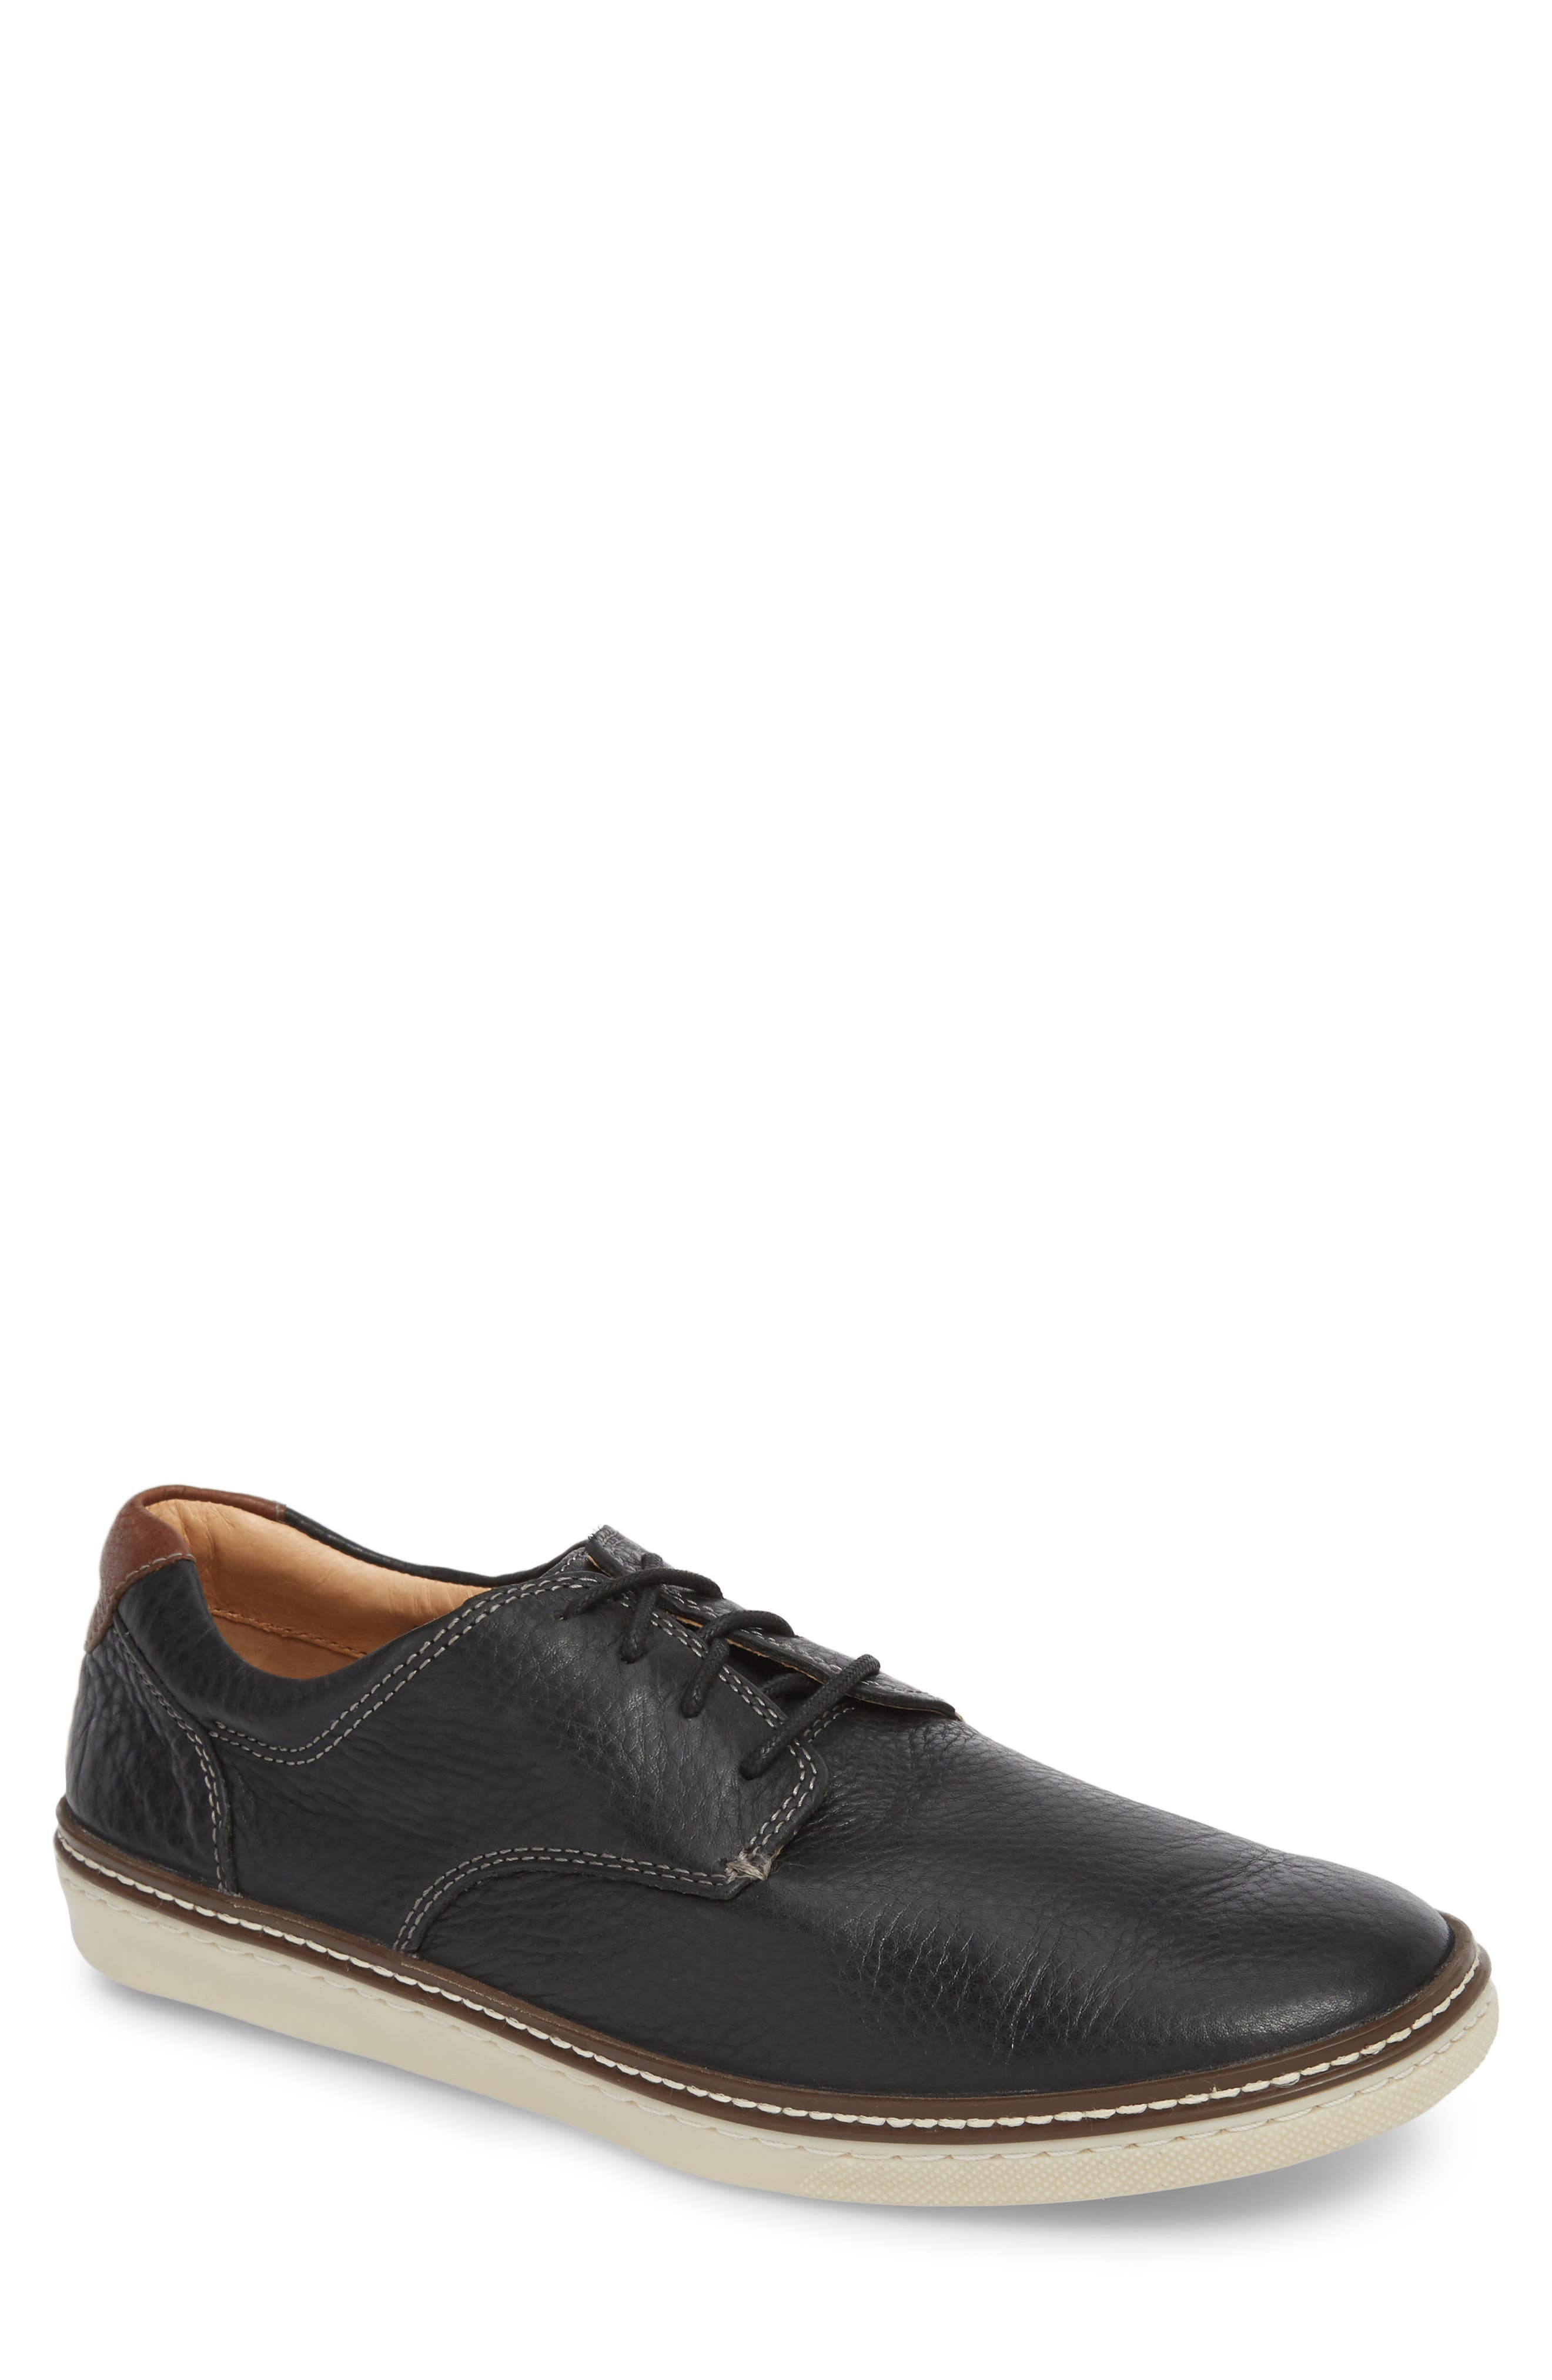 McGuffey Derby Sneaker,                         Main,                         color, Black Leather